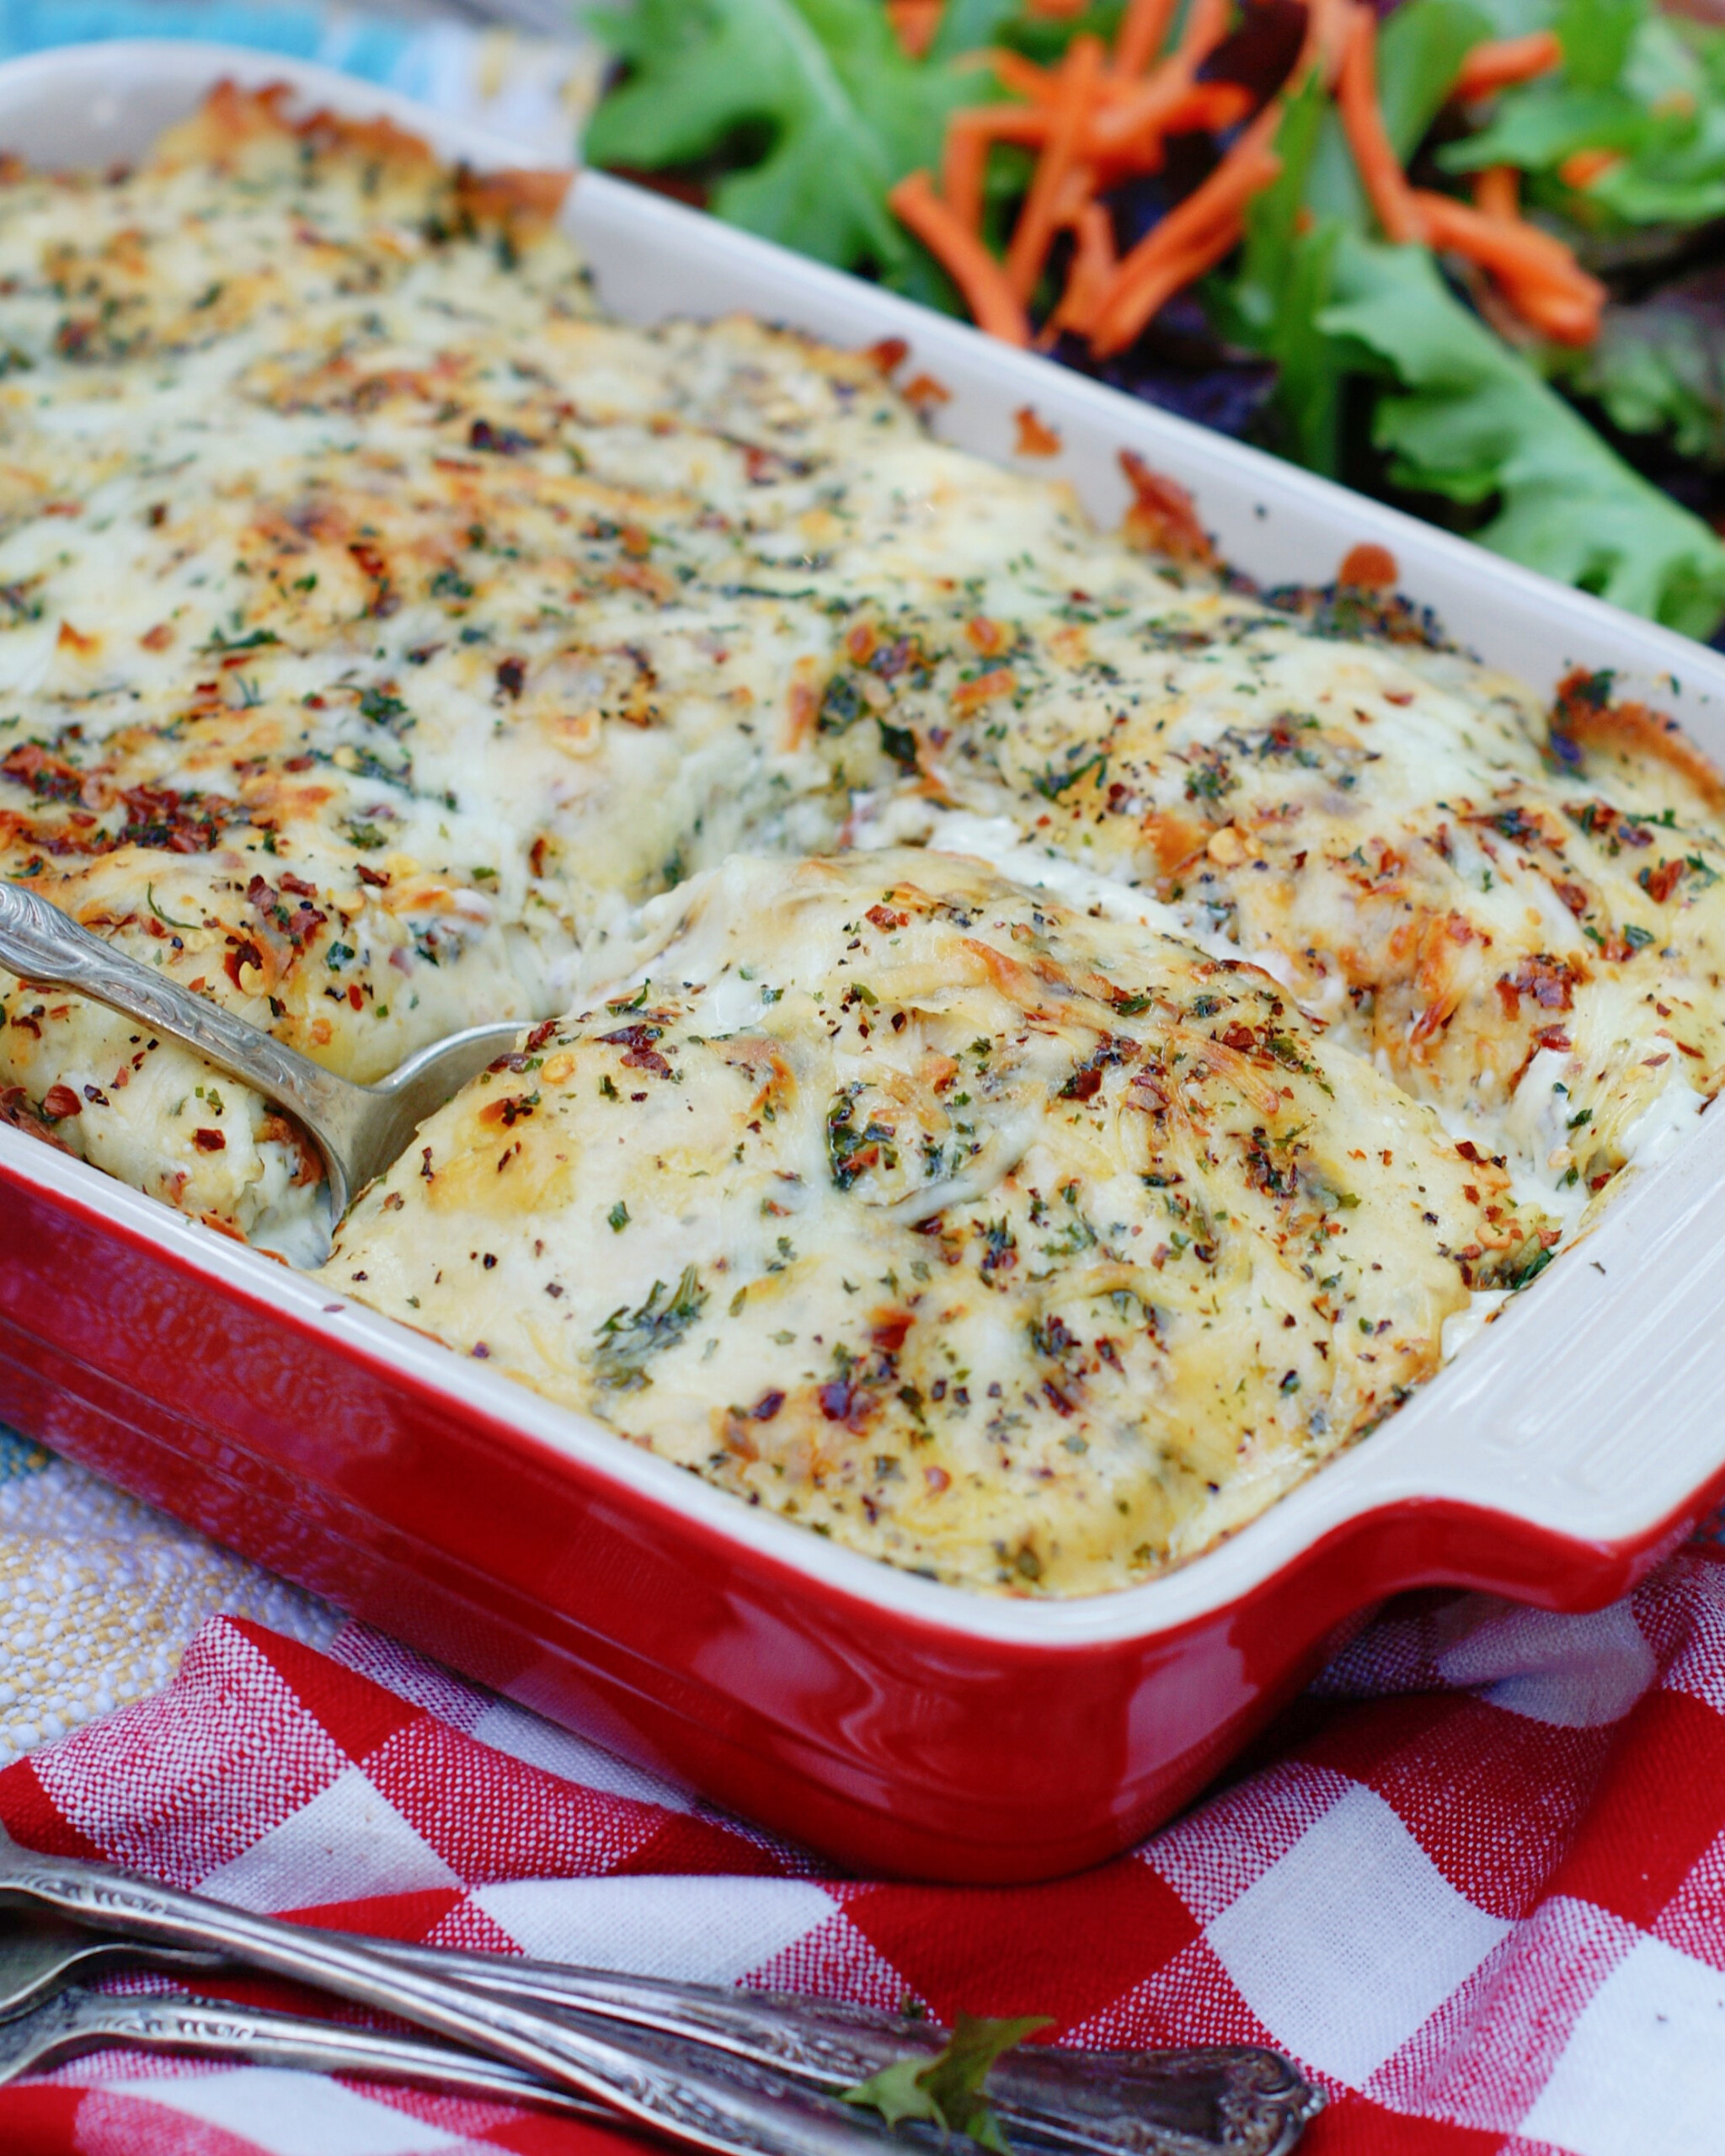 A finished ravioli casserole for a family meal